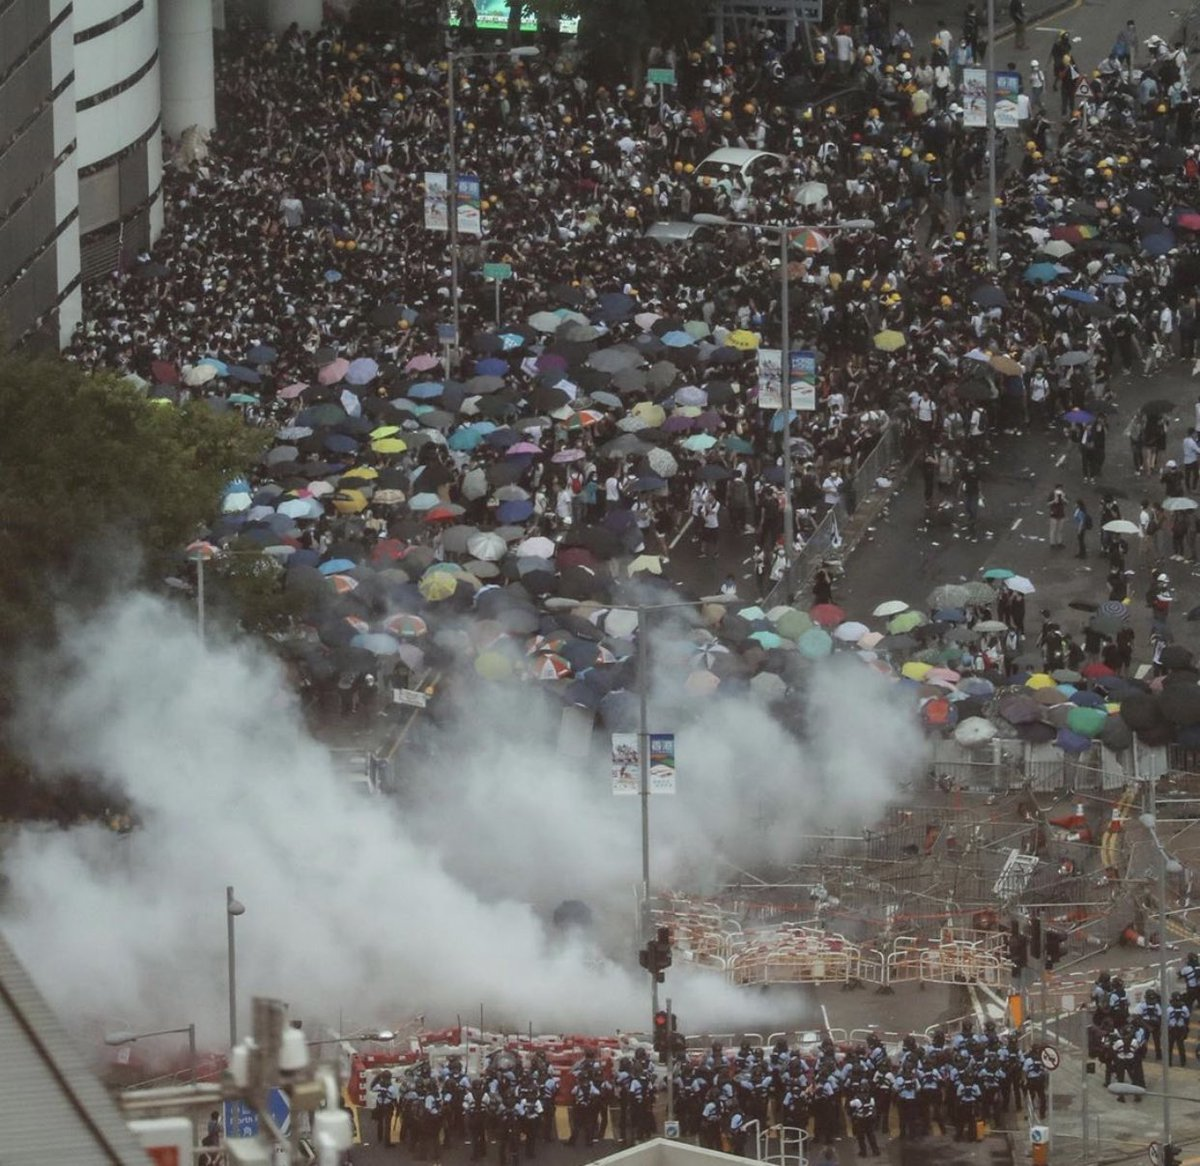 The enormity of the crowds in #HongKongProtests and the police crackdown in response so close to the 30th anniversary of #Tiananmen should not be missed. Hong Kong remembers and so does Beijing.